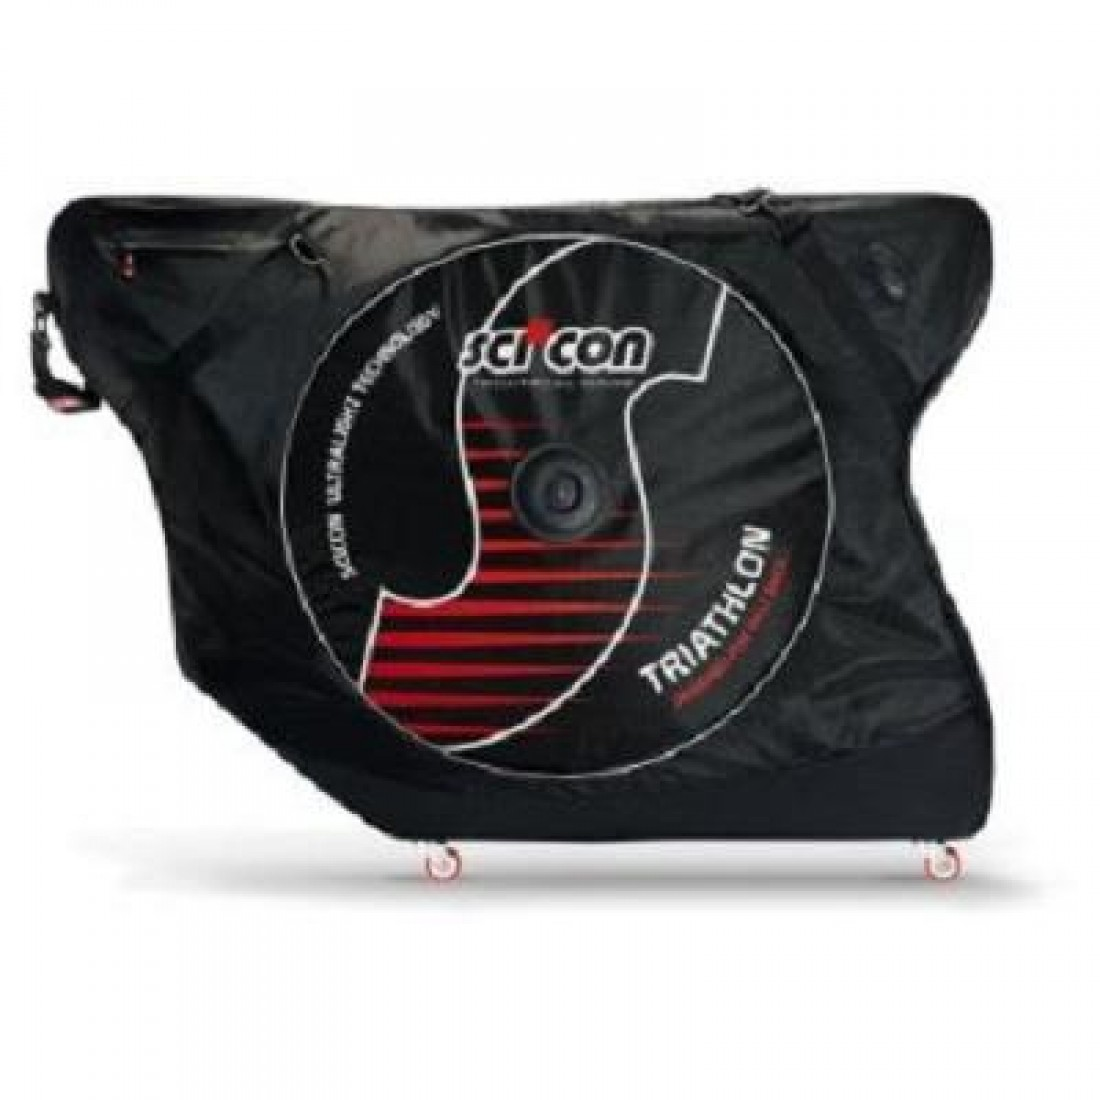 Triathlon Bike Case